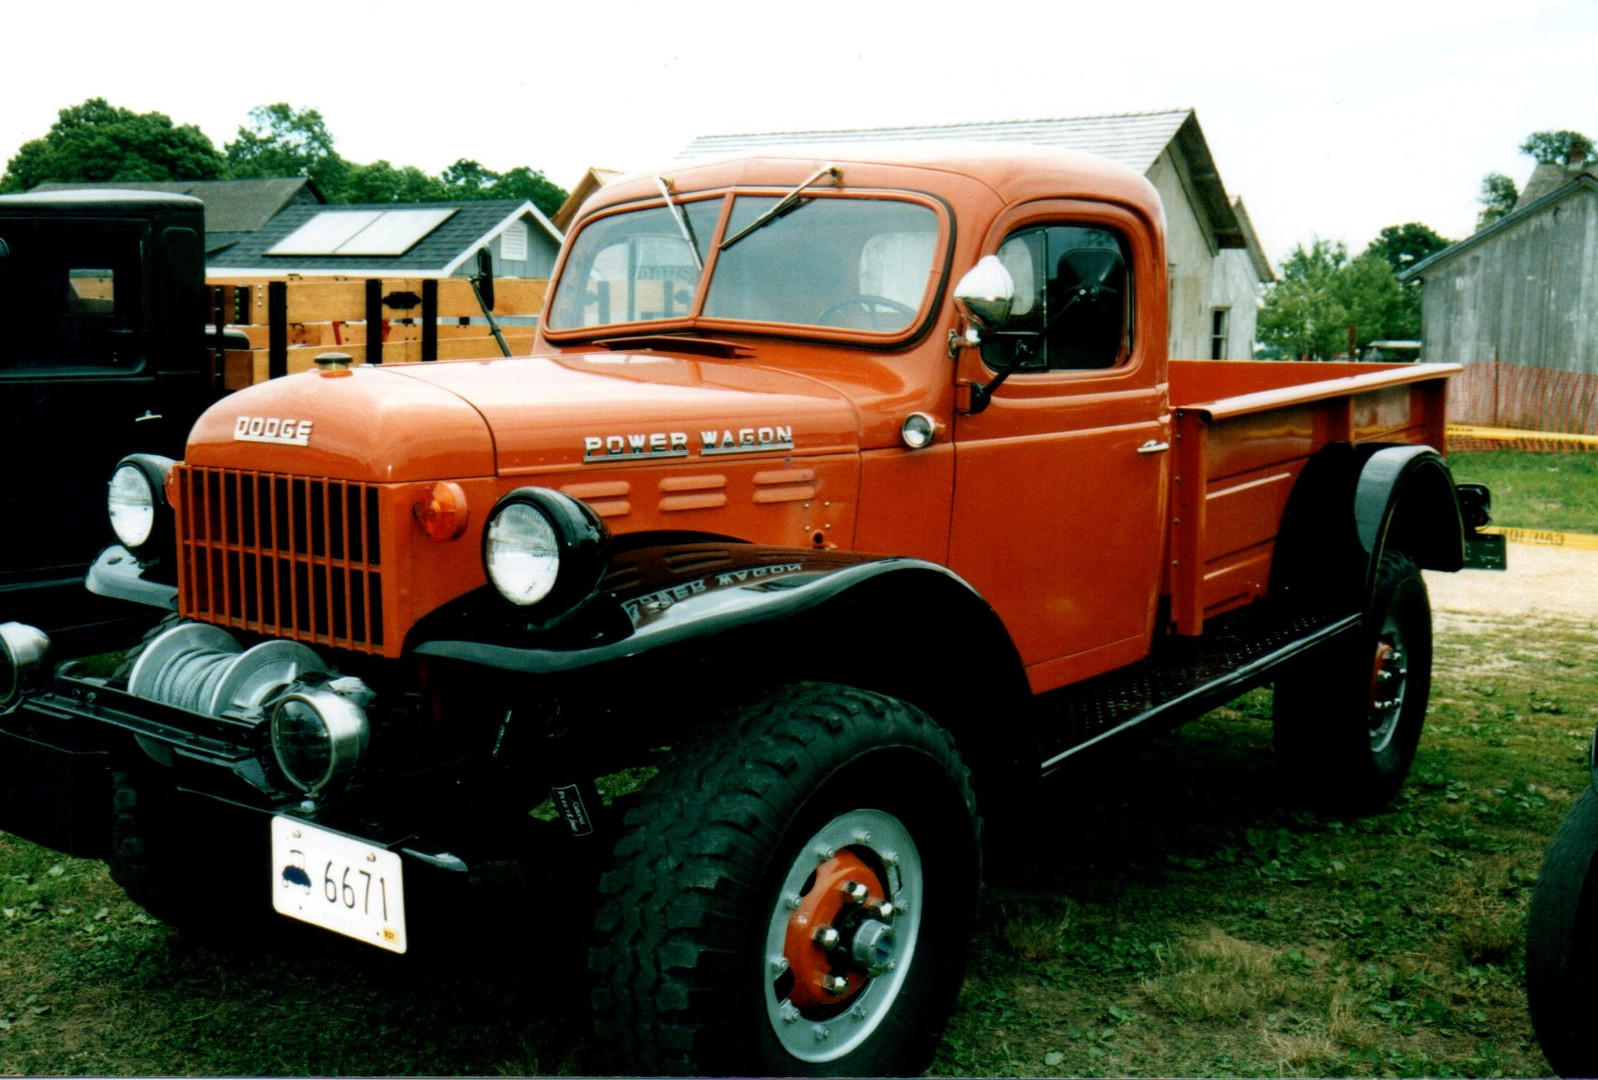 1953 Dodge Power Wagon pickup from Rhode Island